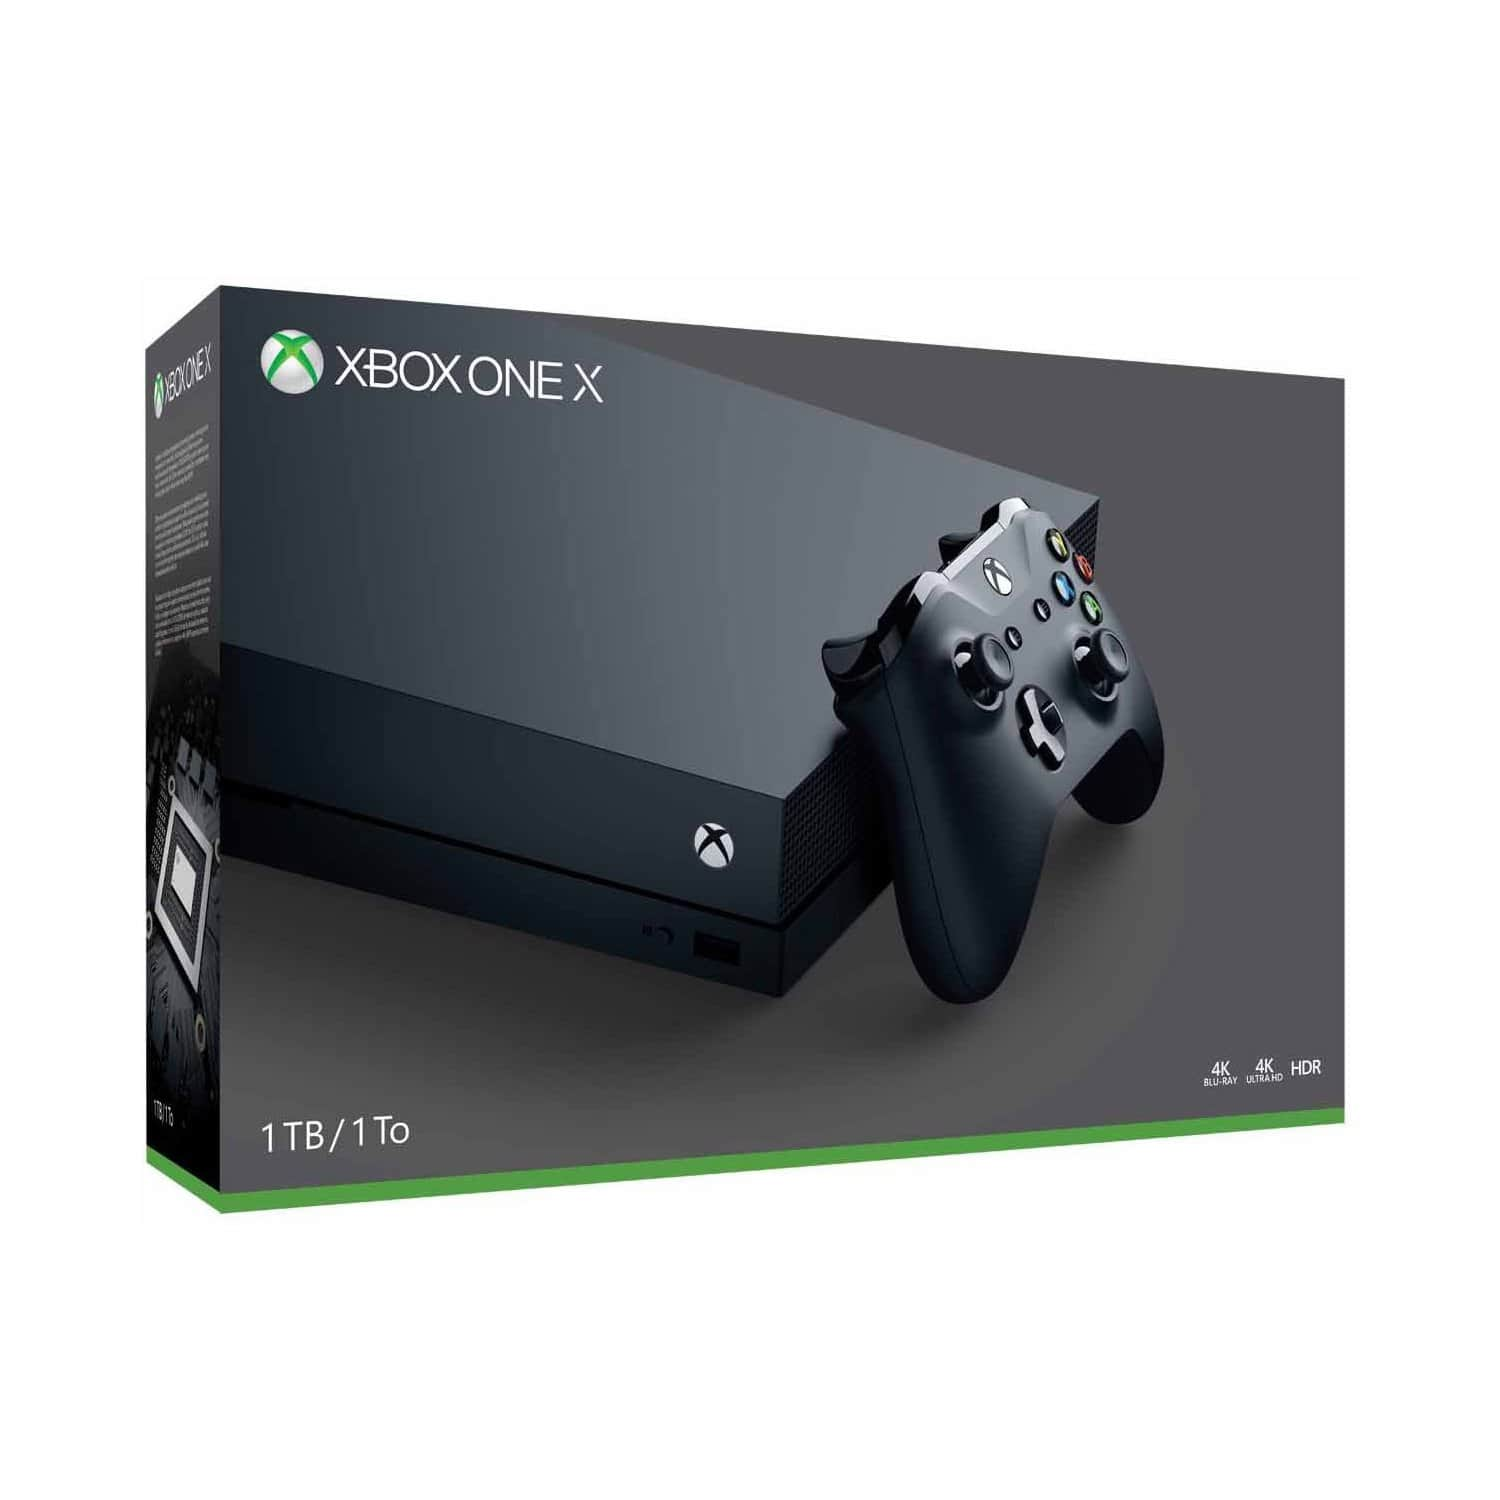 Microsoft XBOX One X 1TB (Good Until 05/16/18) $399.99